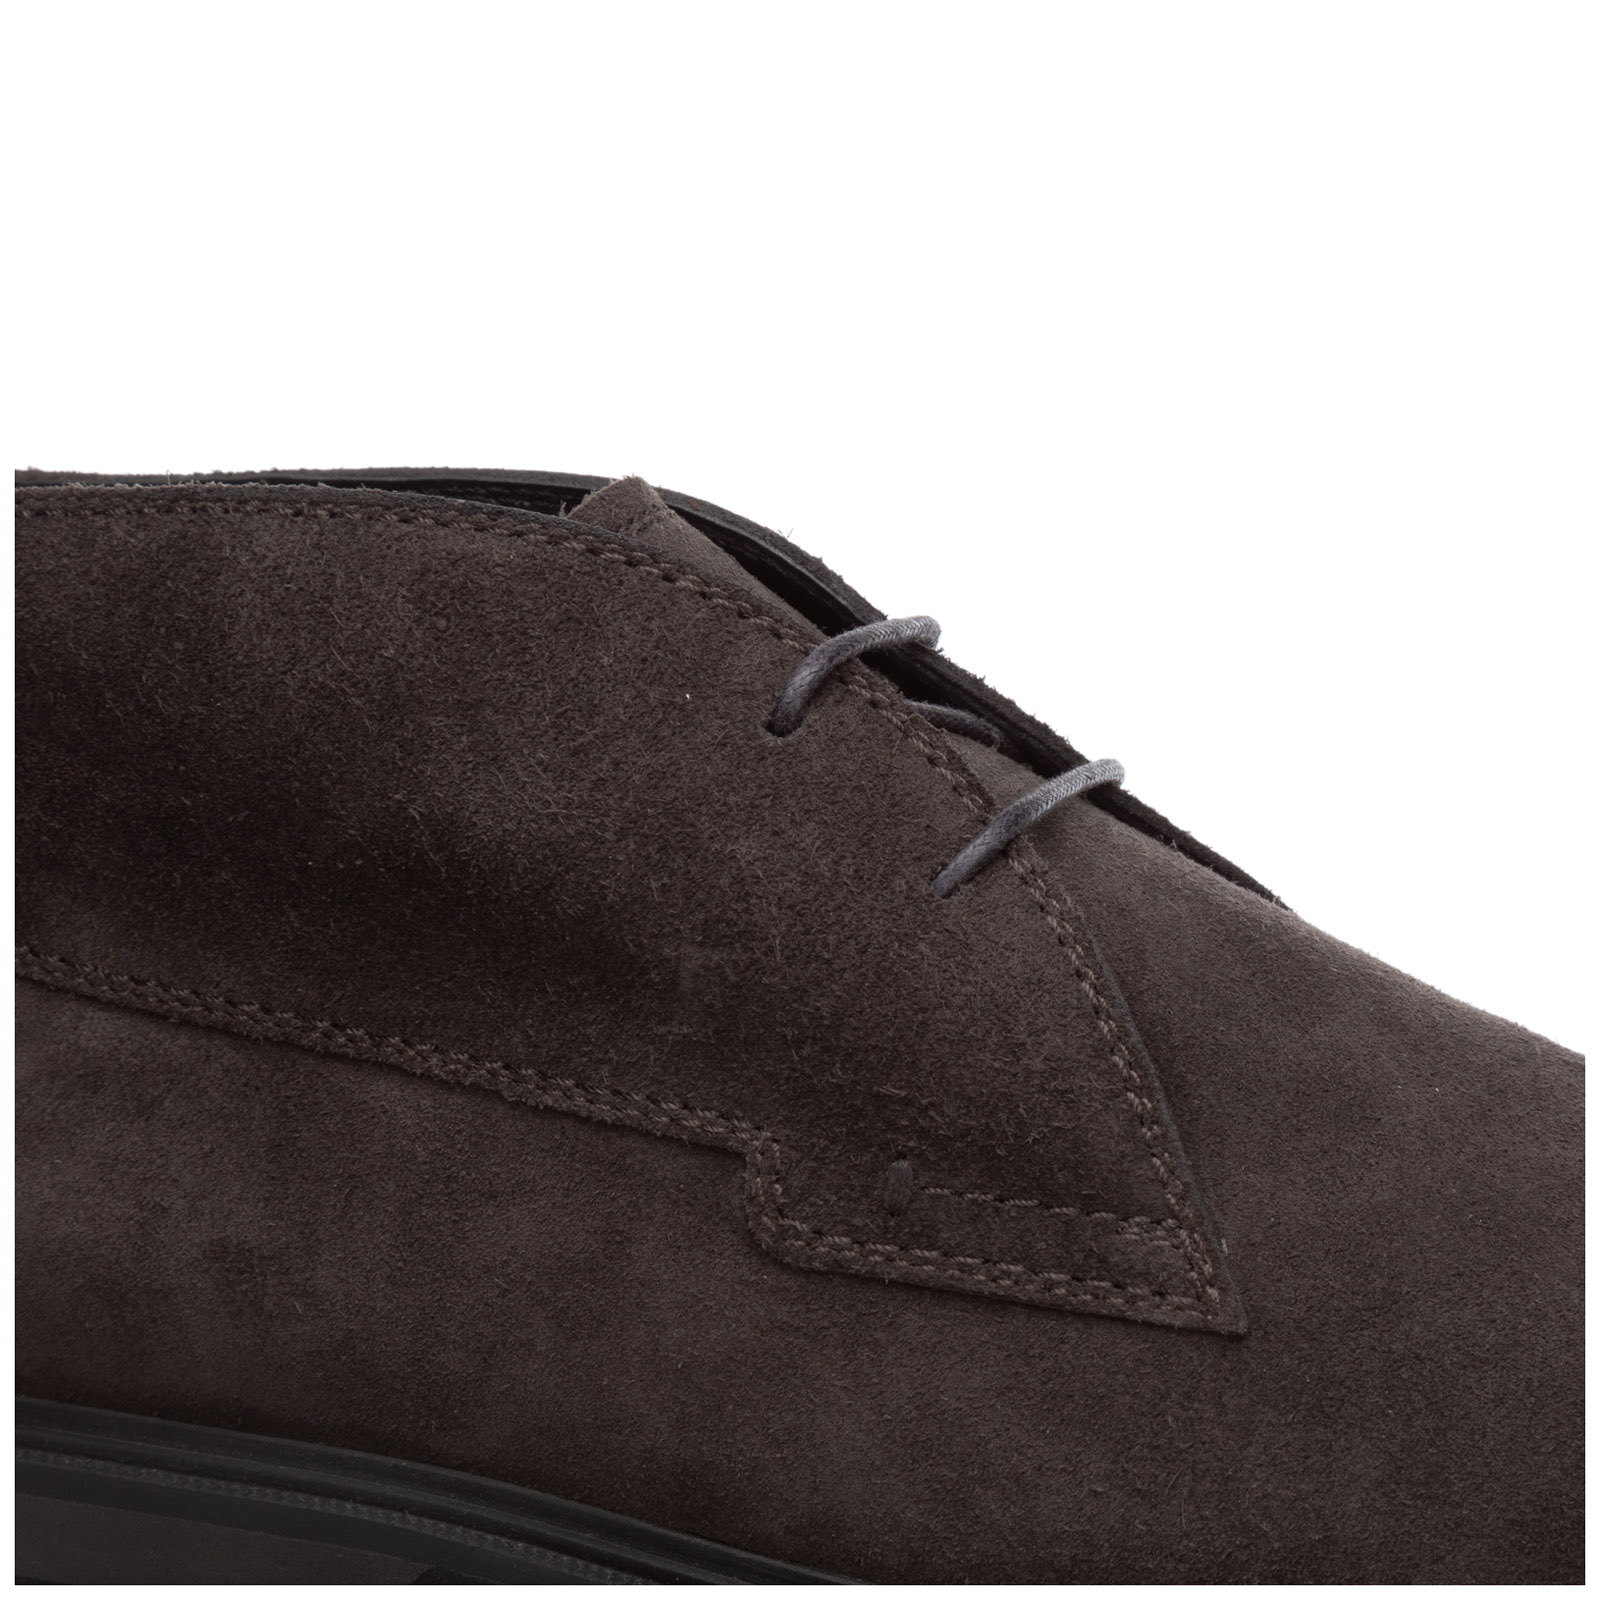 Men's suede desert boots lace up ankle boots polacco fondo gomma